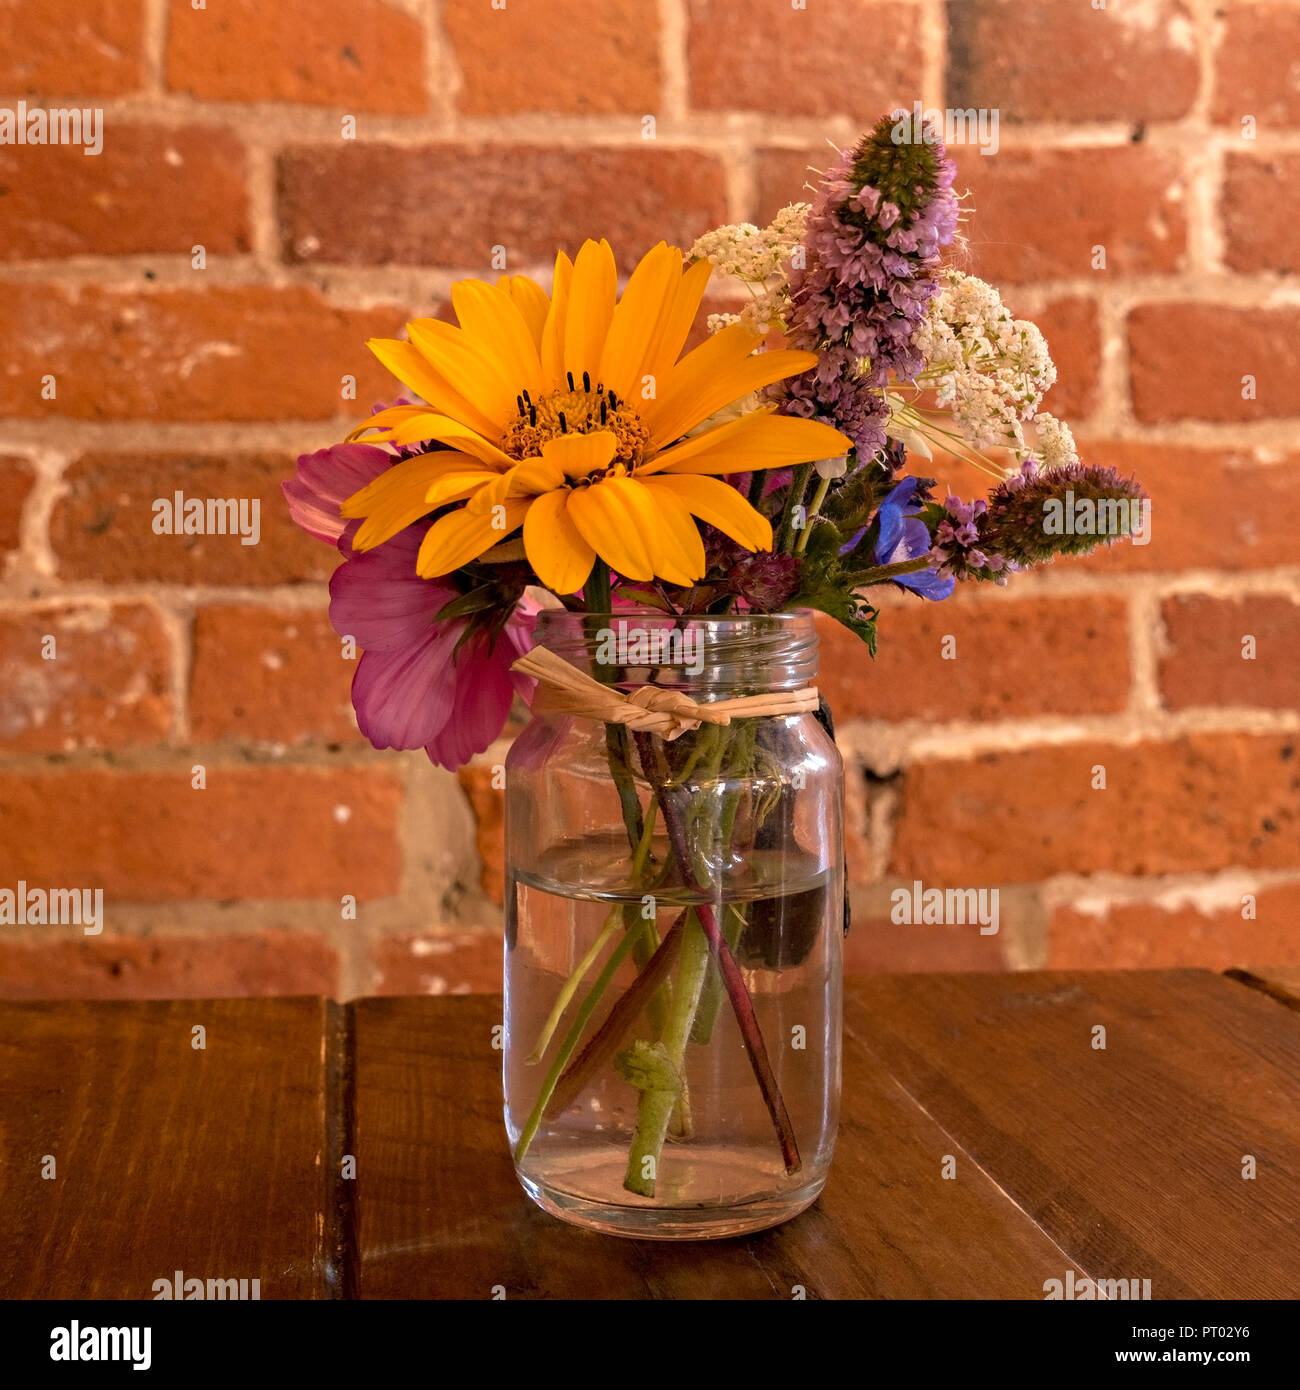 Small Simple Flower Arrangement High Resolution Stock Photography And Images Alamy